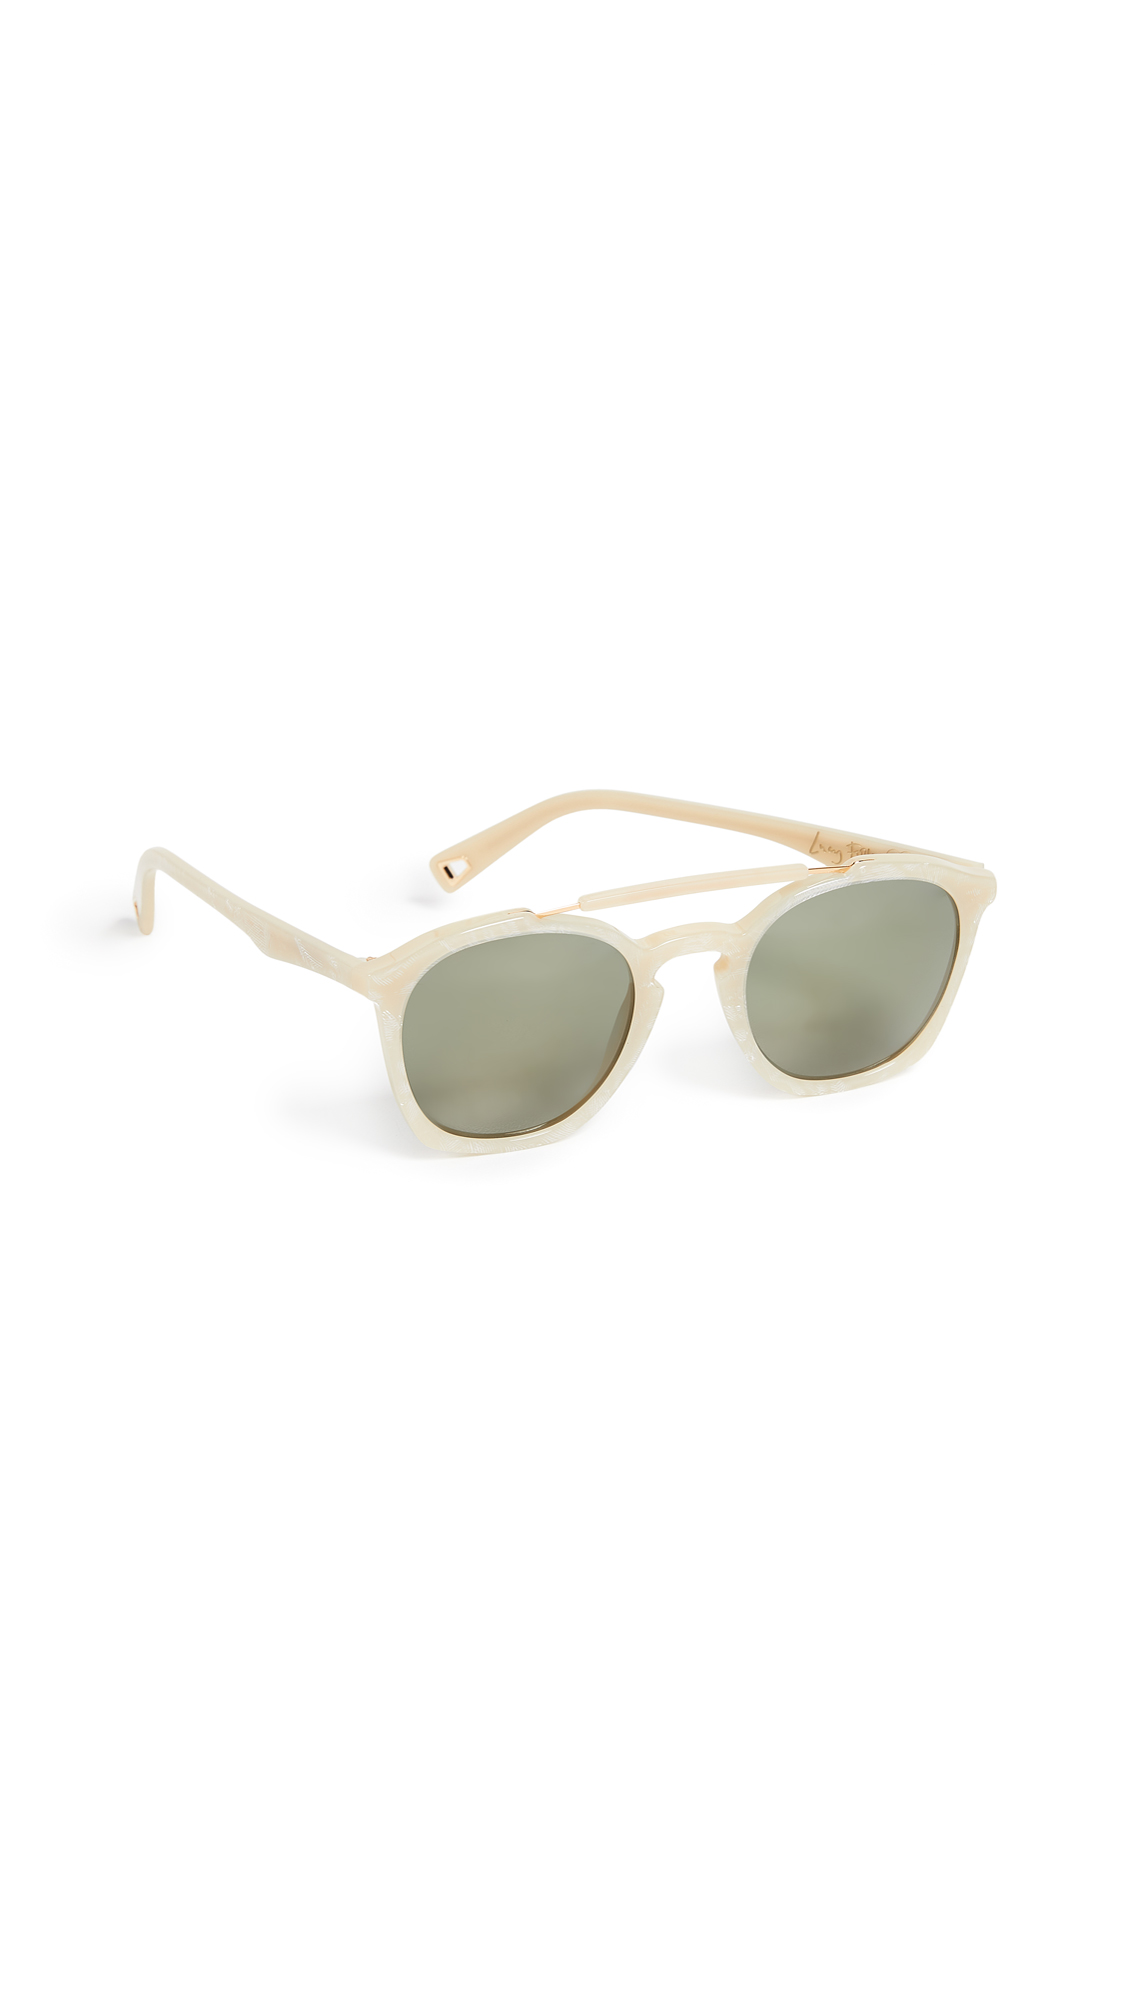 LUCY FOLK Shady Ships Sunglasses in Mother Of Pearl